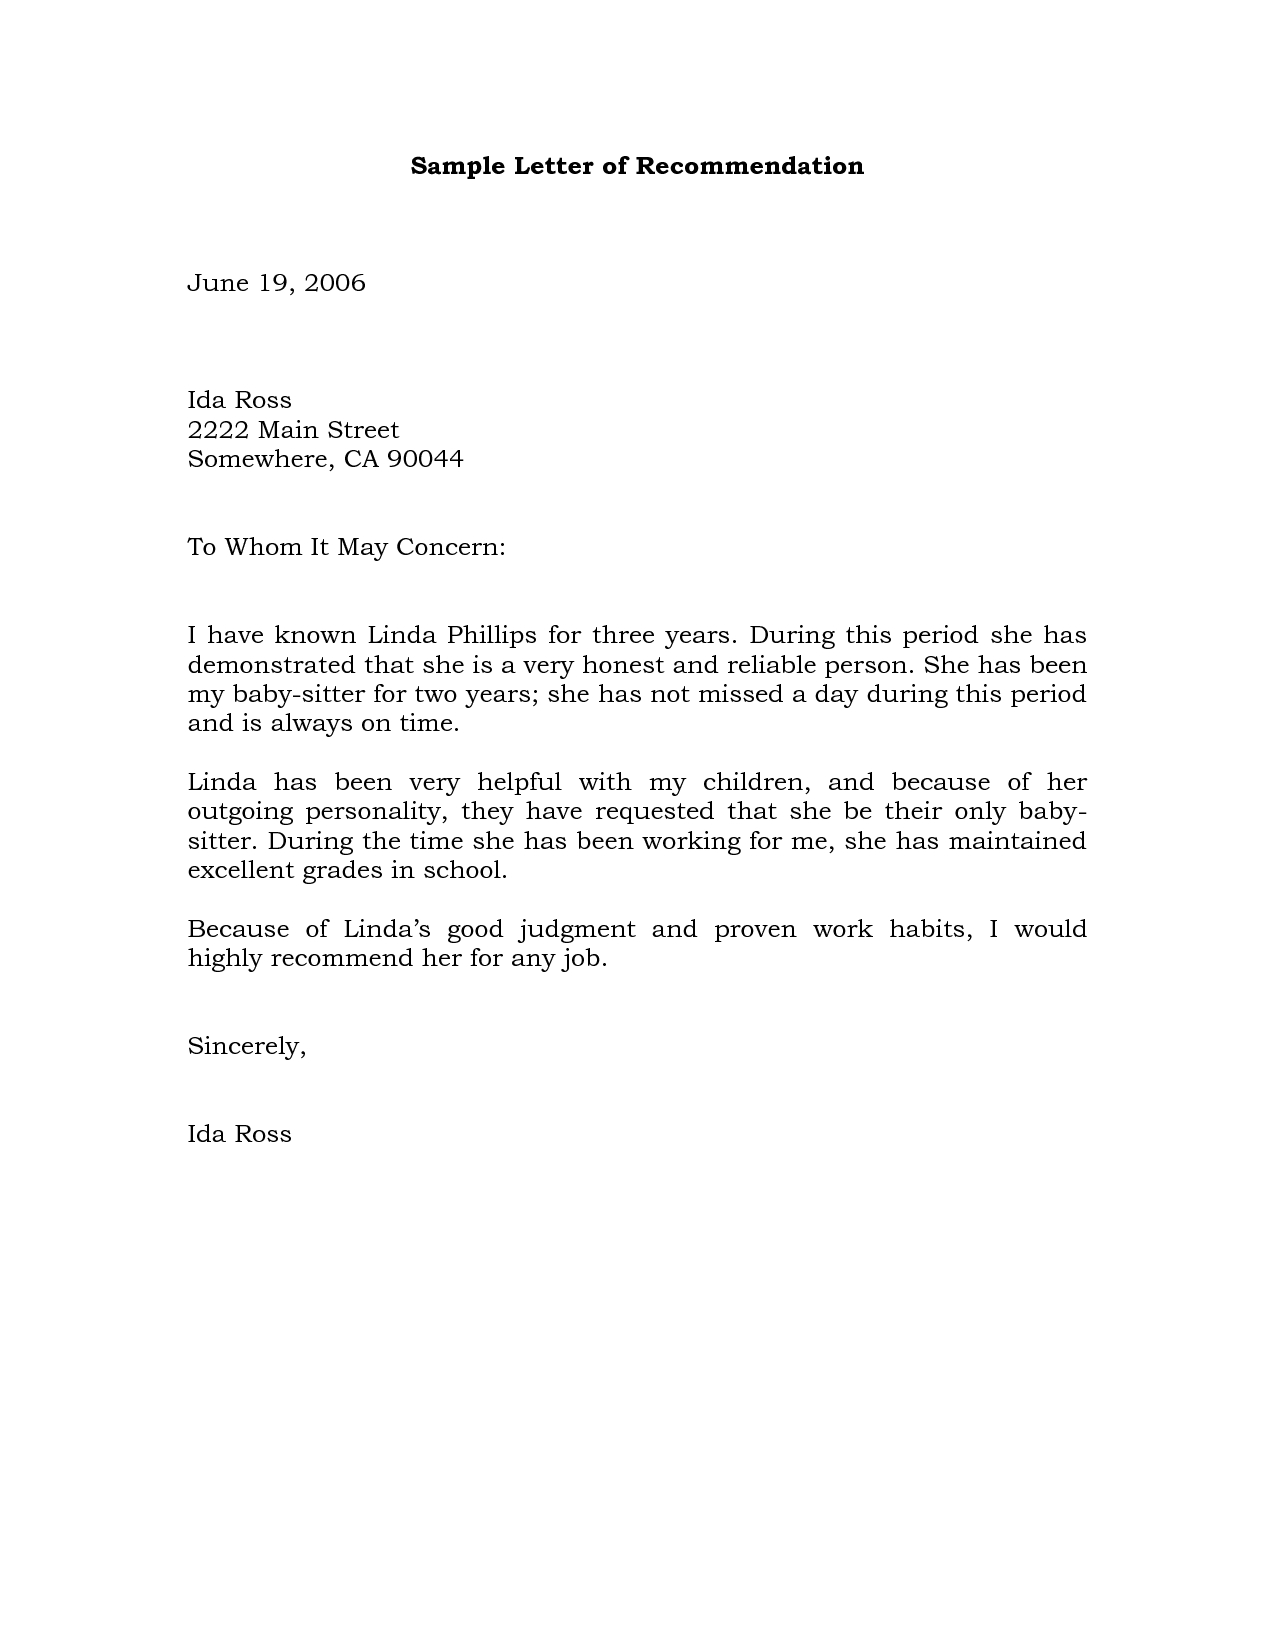 Real Estate Referral Letter Template - Sample Re Mendation Letter Example Projects to Try